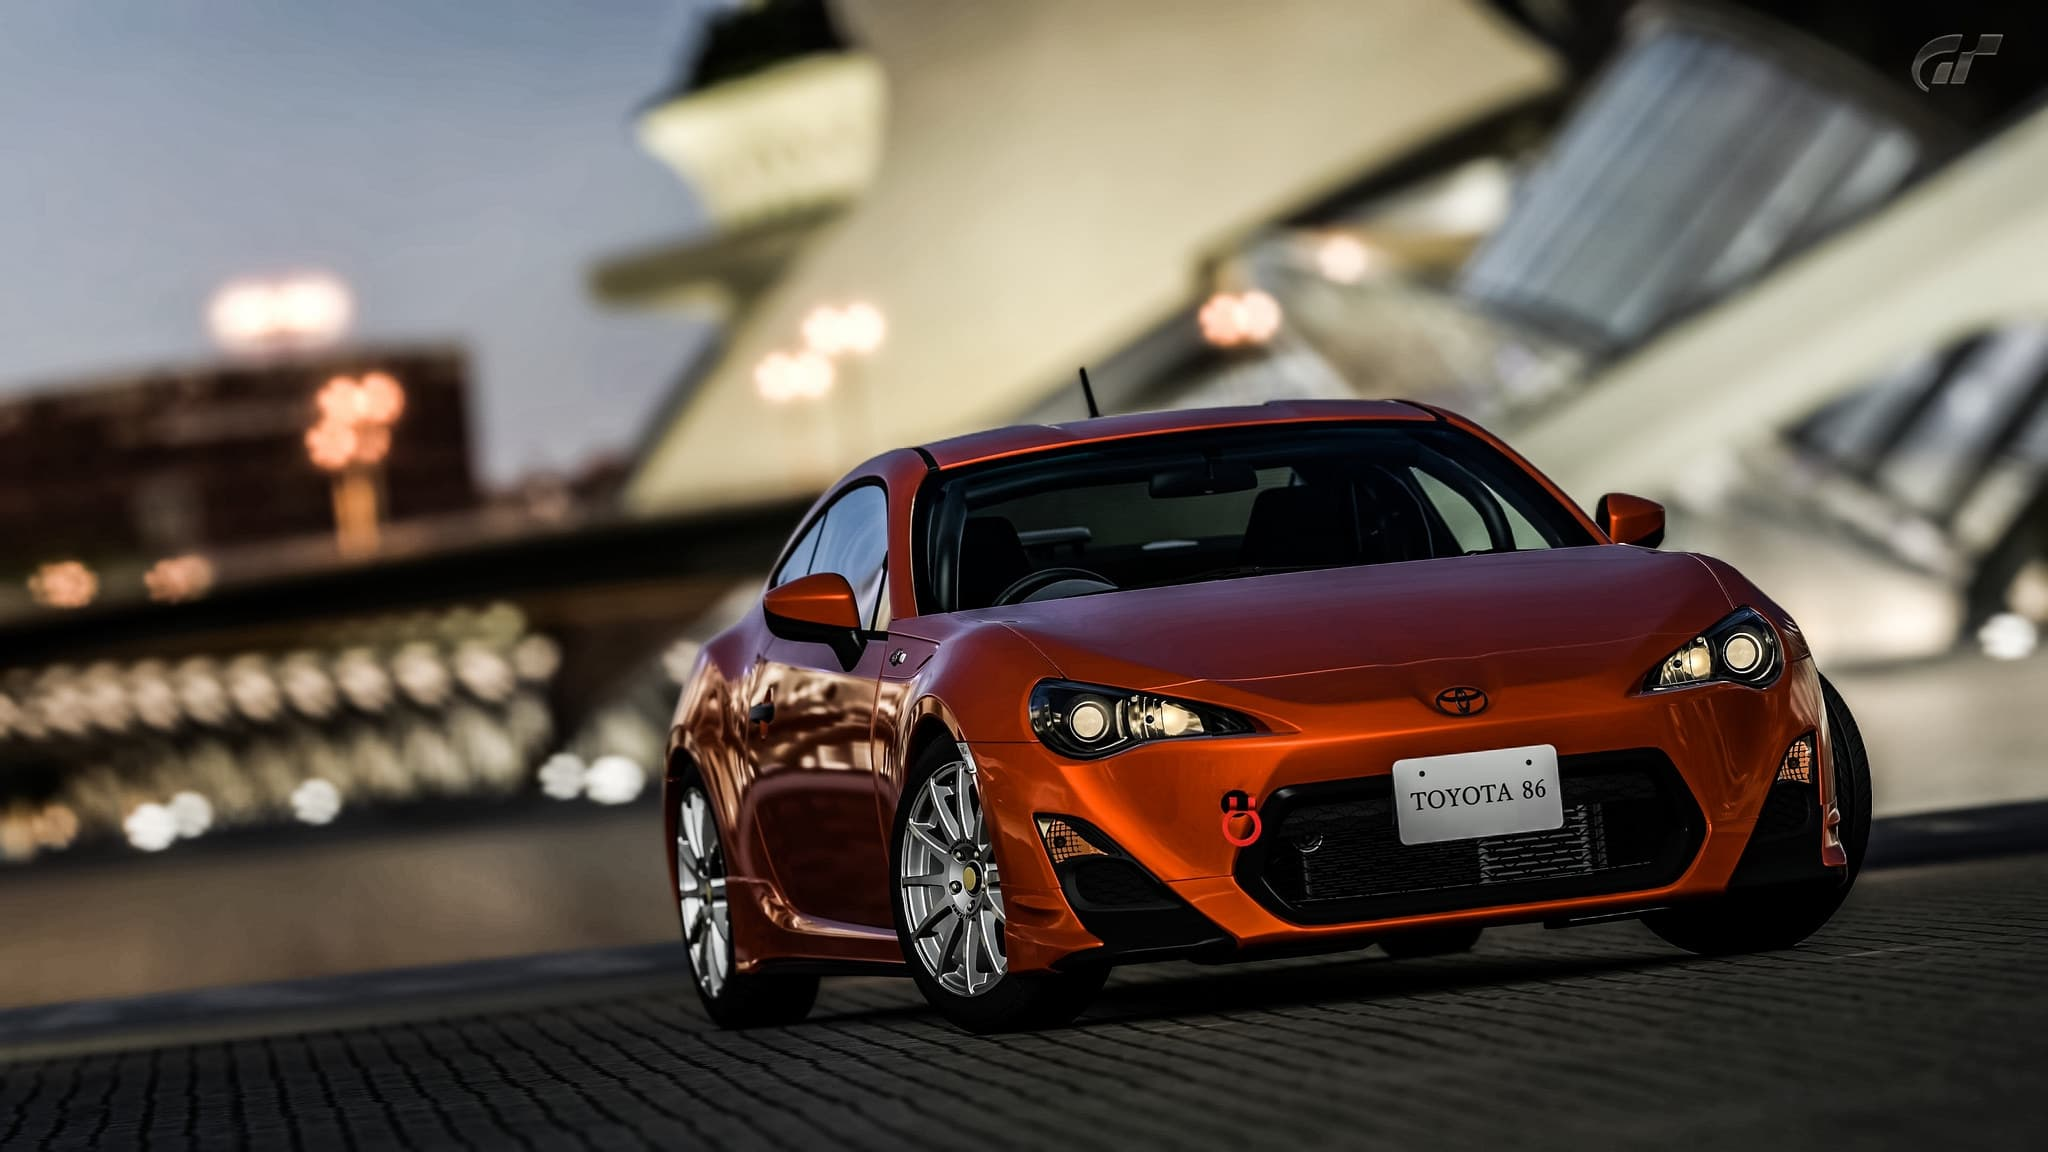 Toyota 86 HD photo